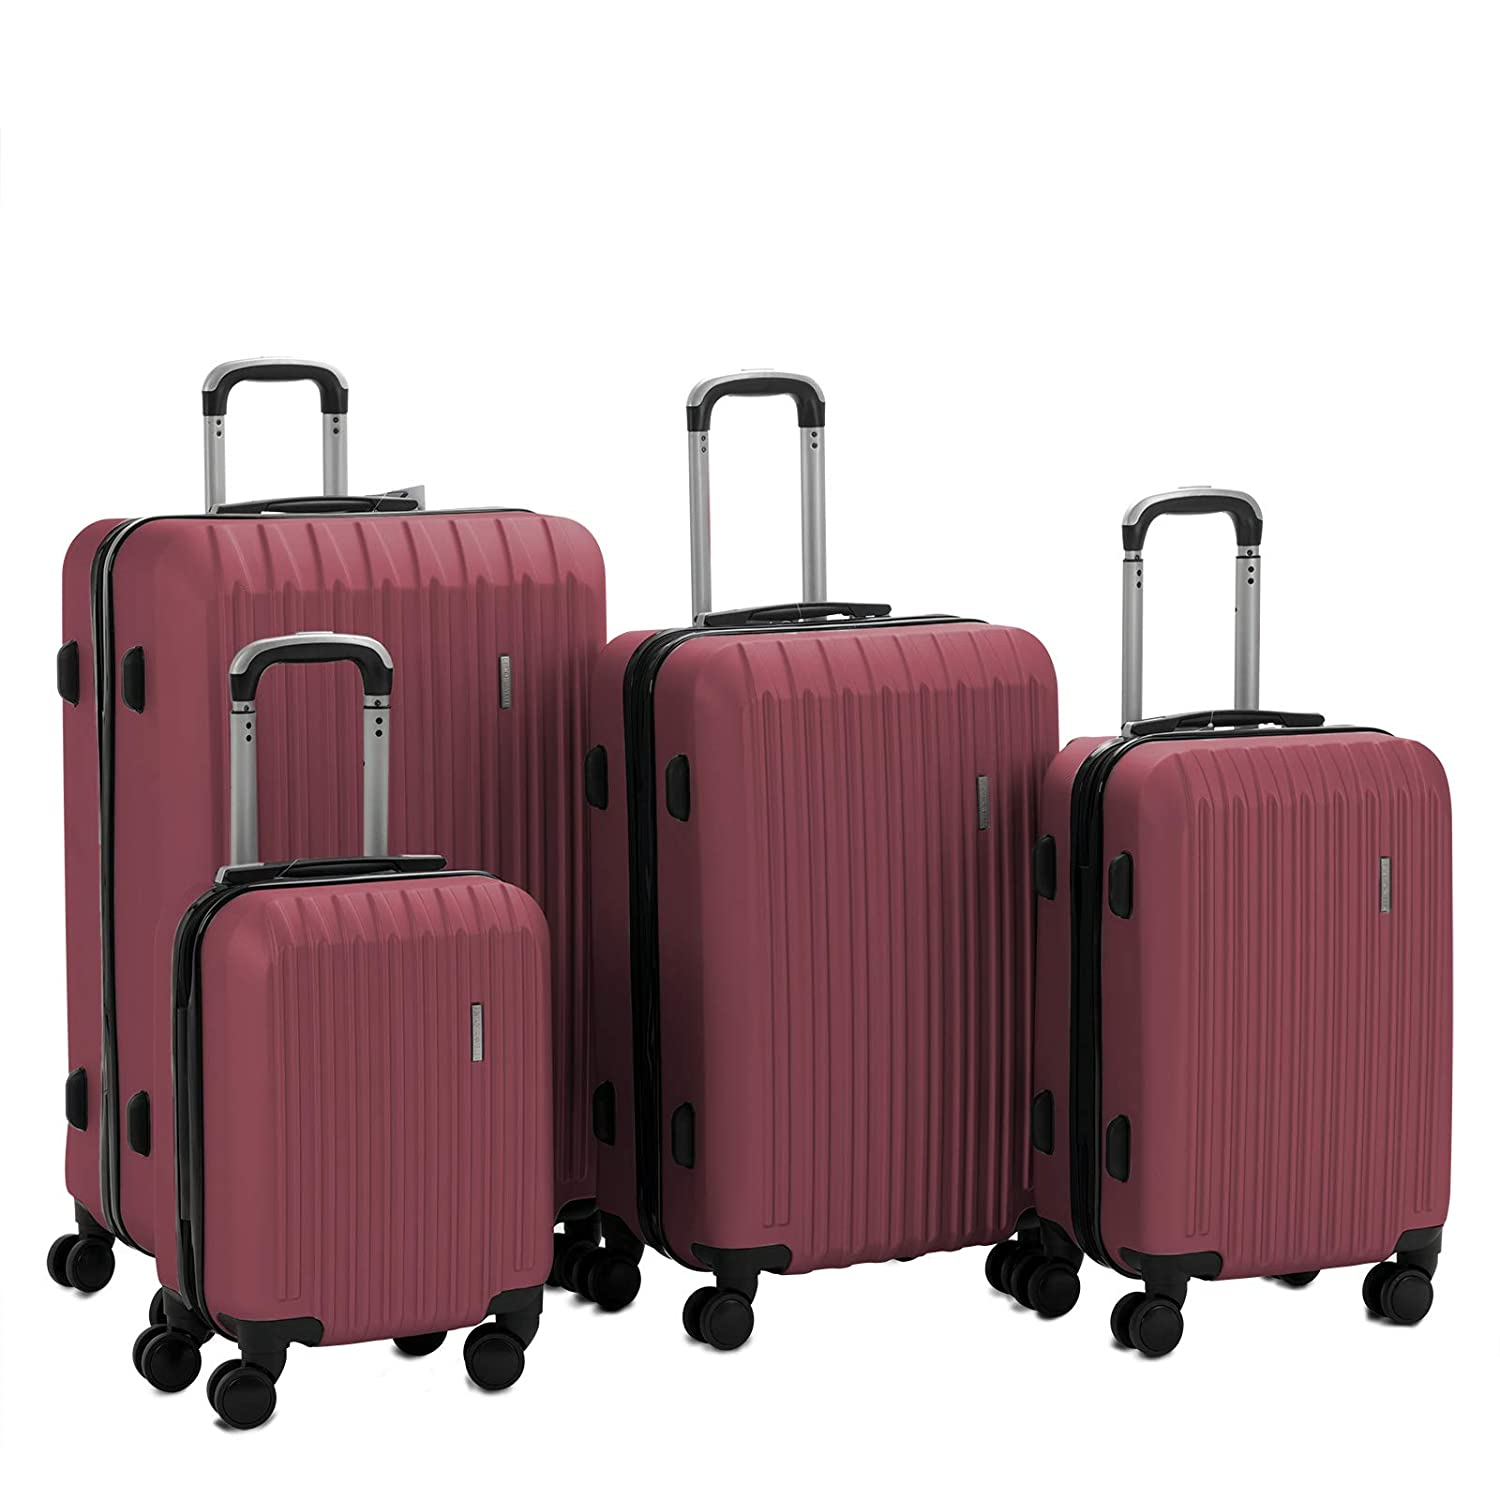 b71b2610f4eb Murtisol 4 Pieces ABS Luggage Sets Hardside Spinner Lightweight Durable  Spinner Suitcase 16